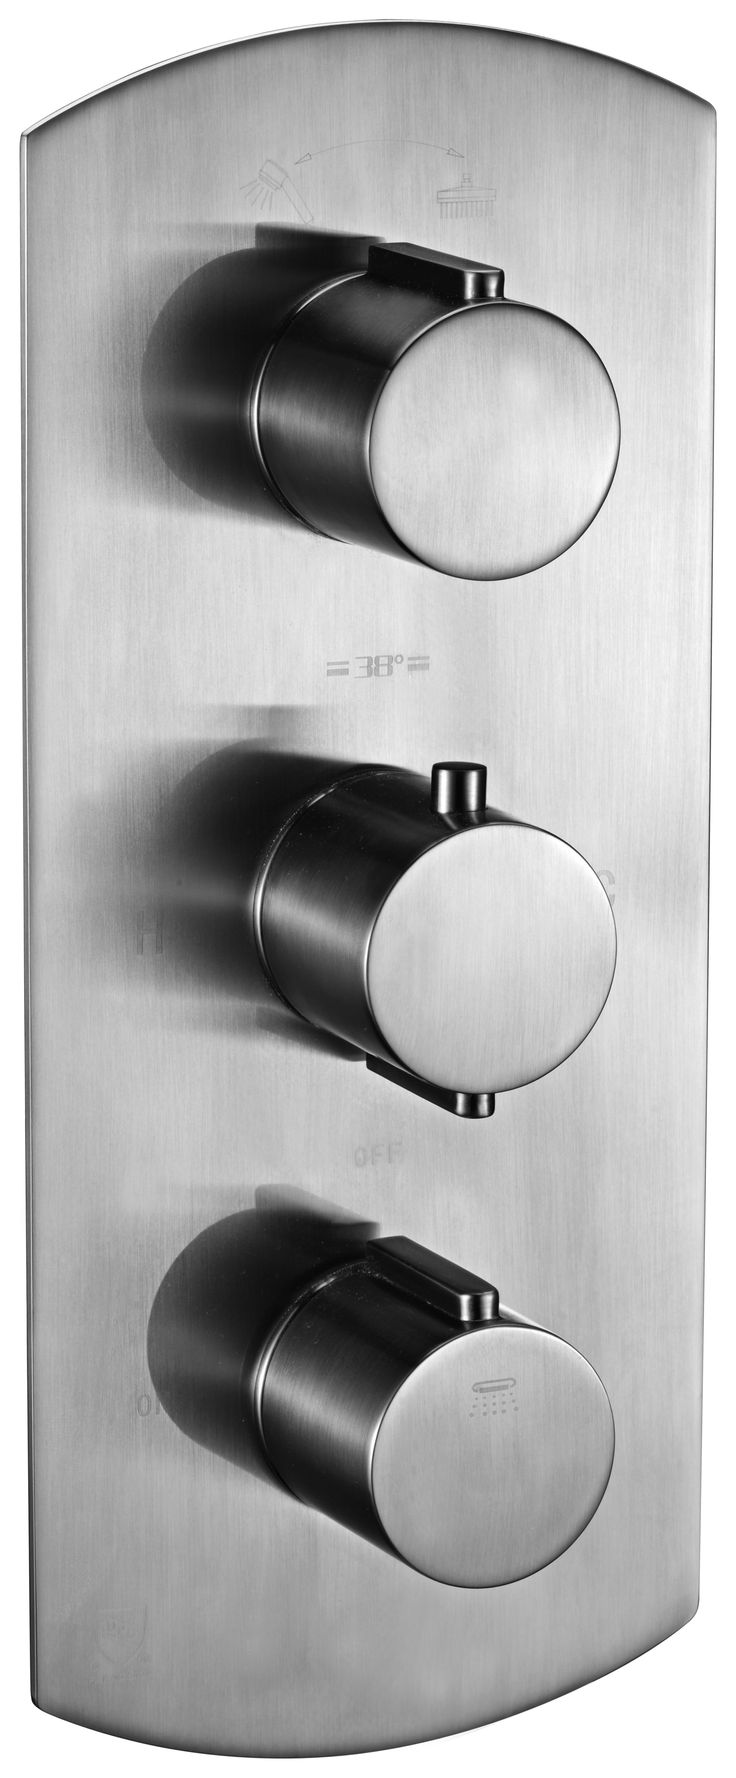 ALFI brand AB3901-BN Brushed Nickel Round 2 Way Thermostatic Shower Mixer